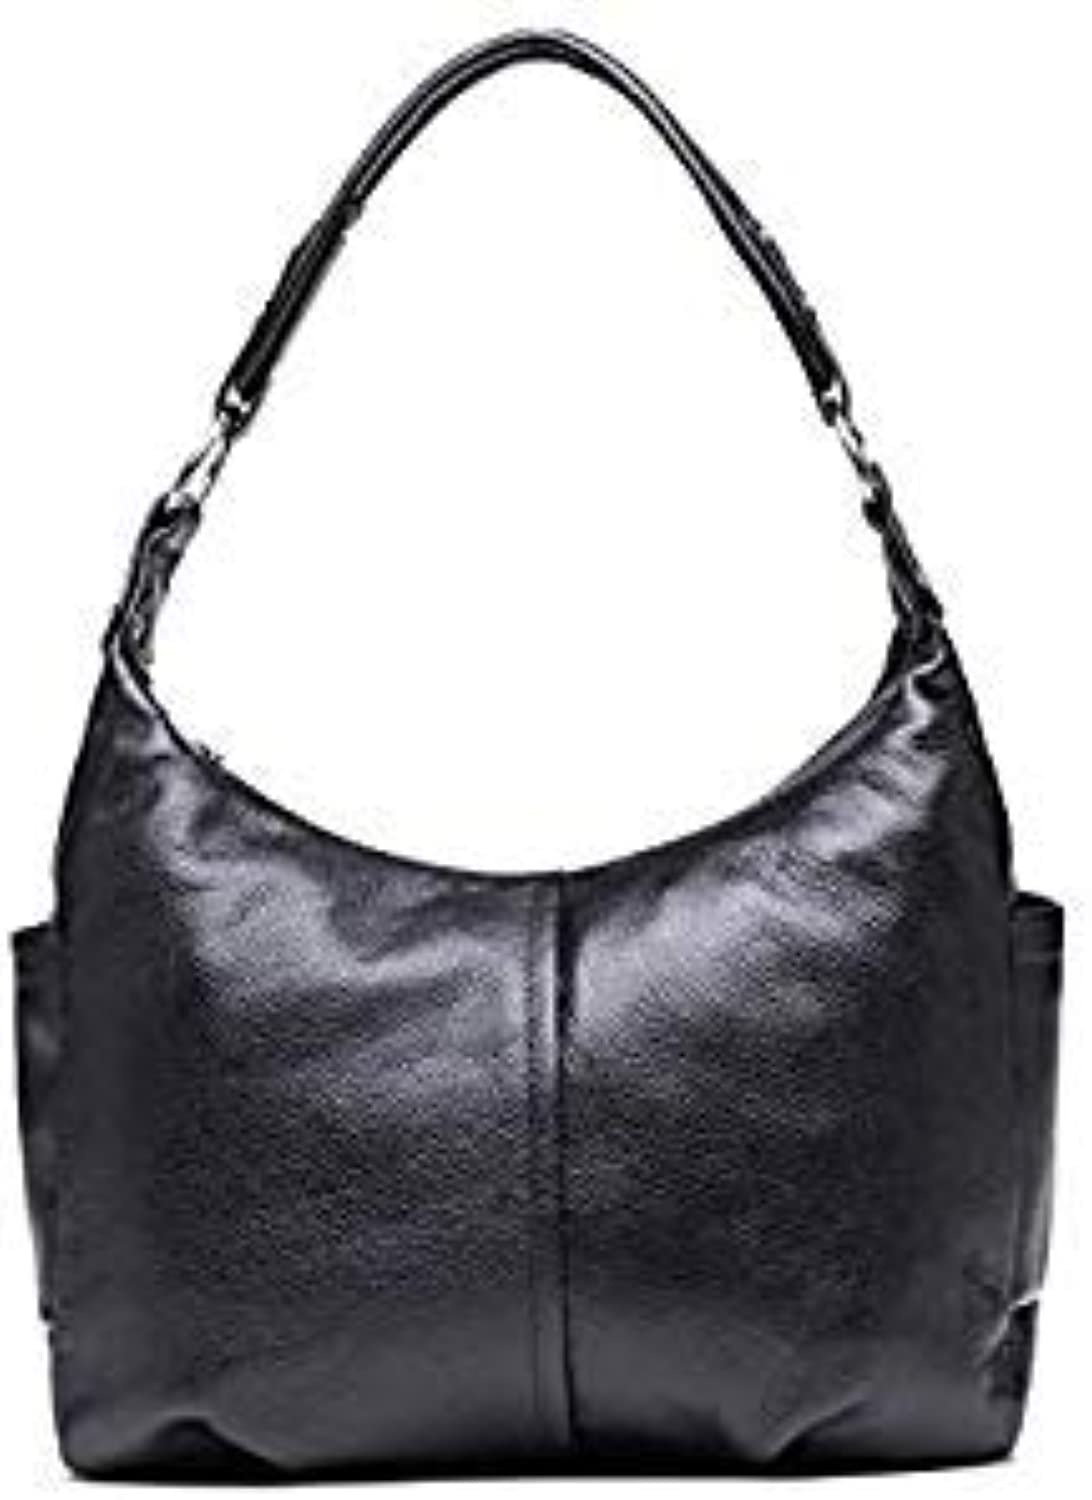 Bloomerang Designer Leisure Genuine Leather Bags Ladies Real Leather Bags Women Luxury Shoulder Tote Bag High Quality Purses and Handbags color Black